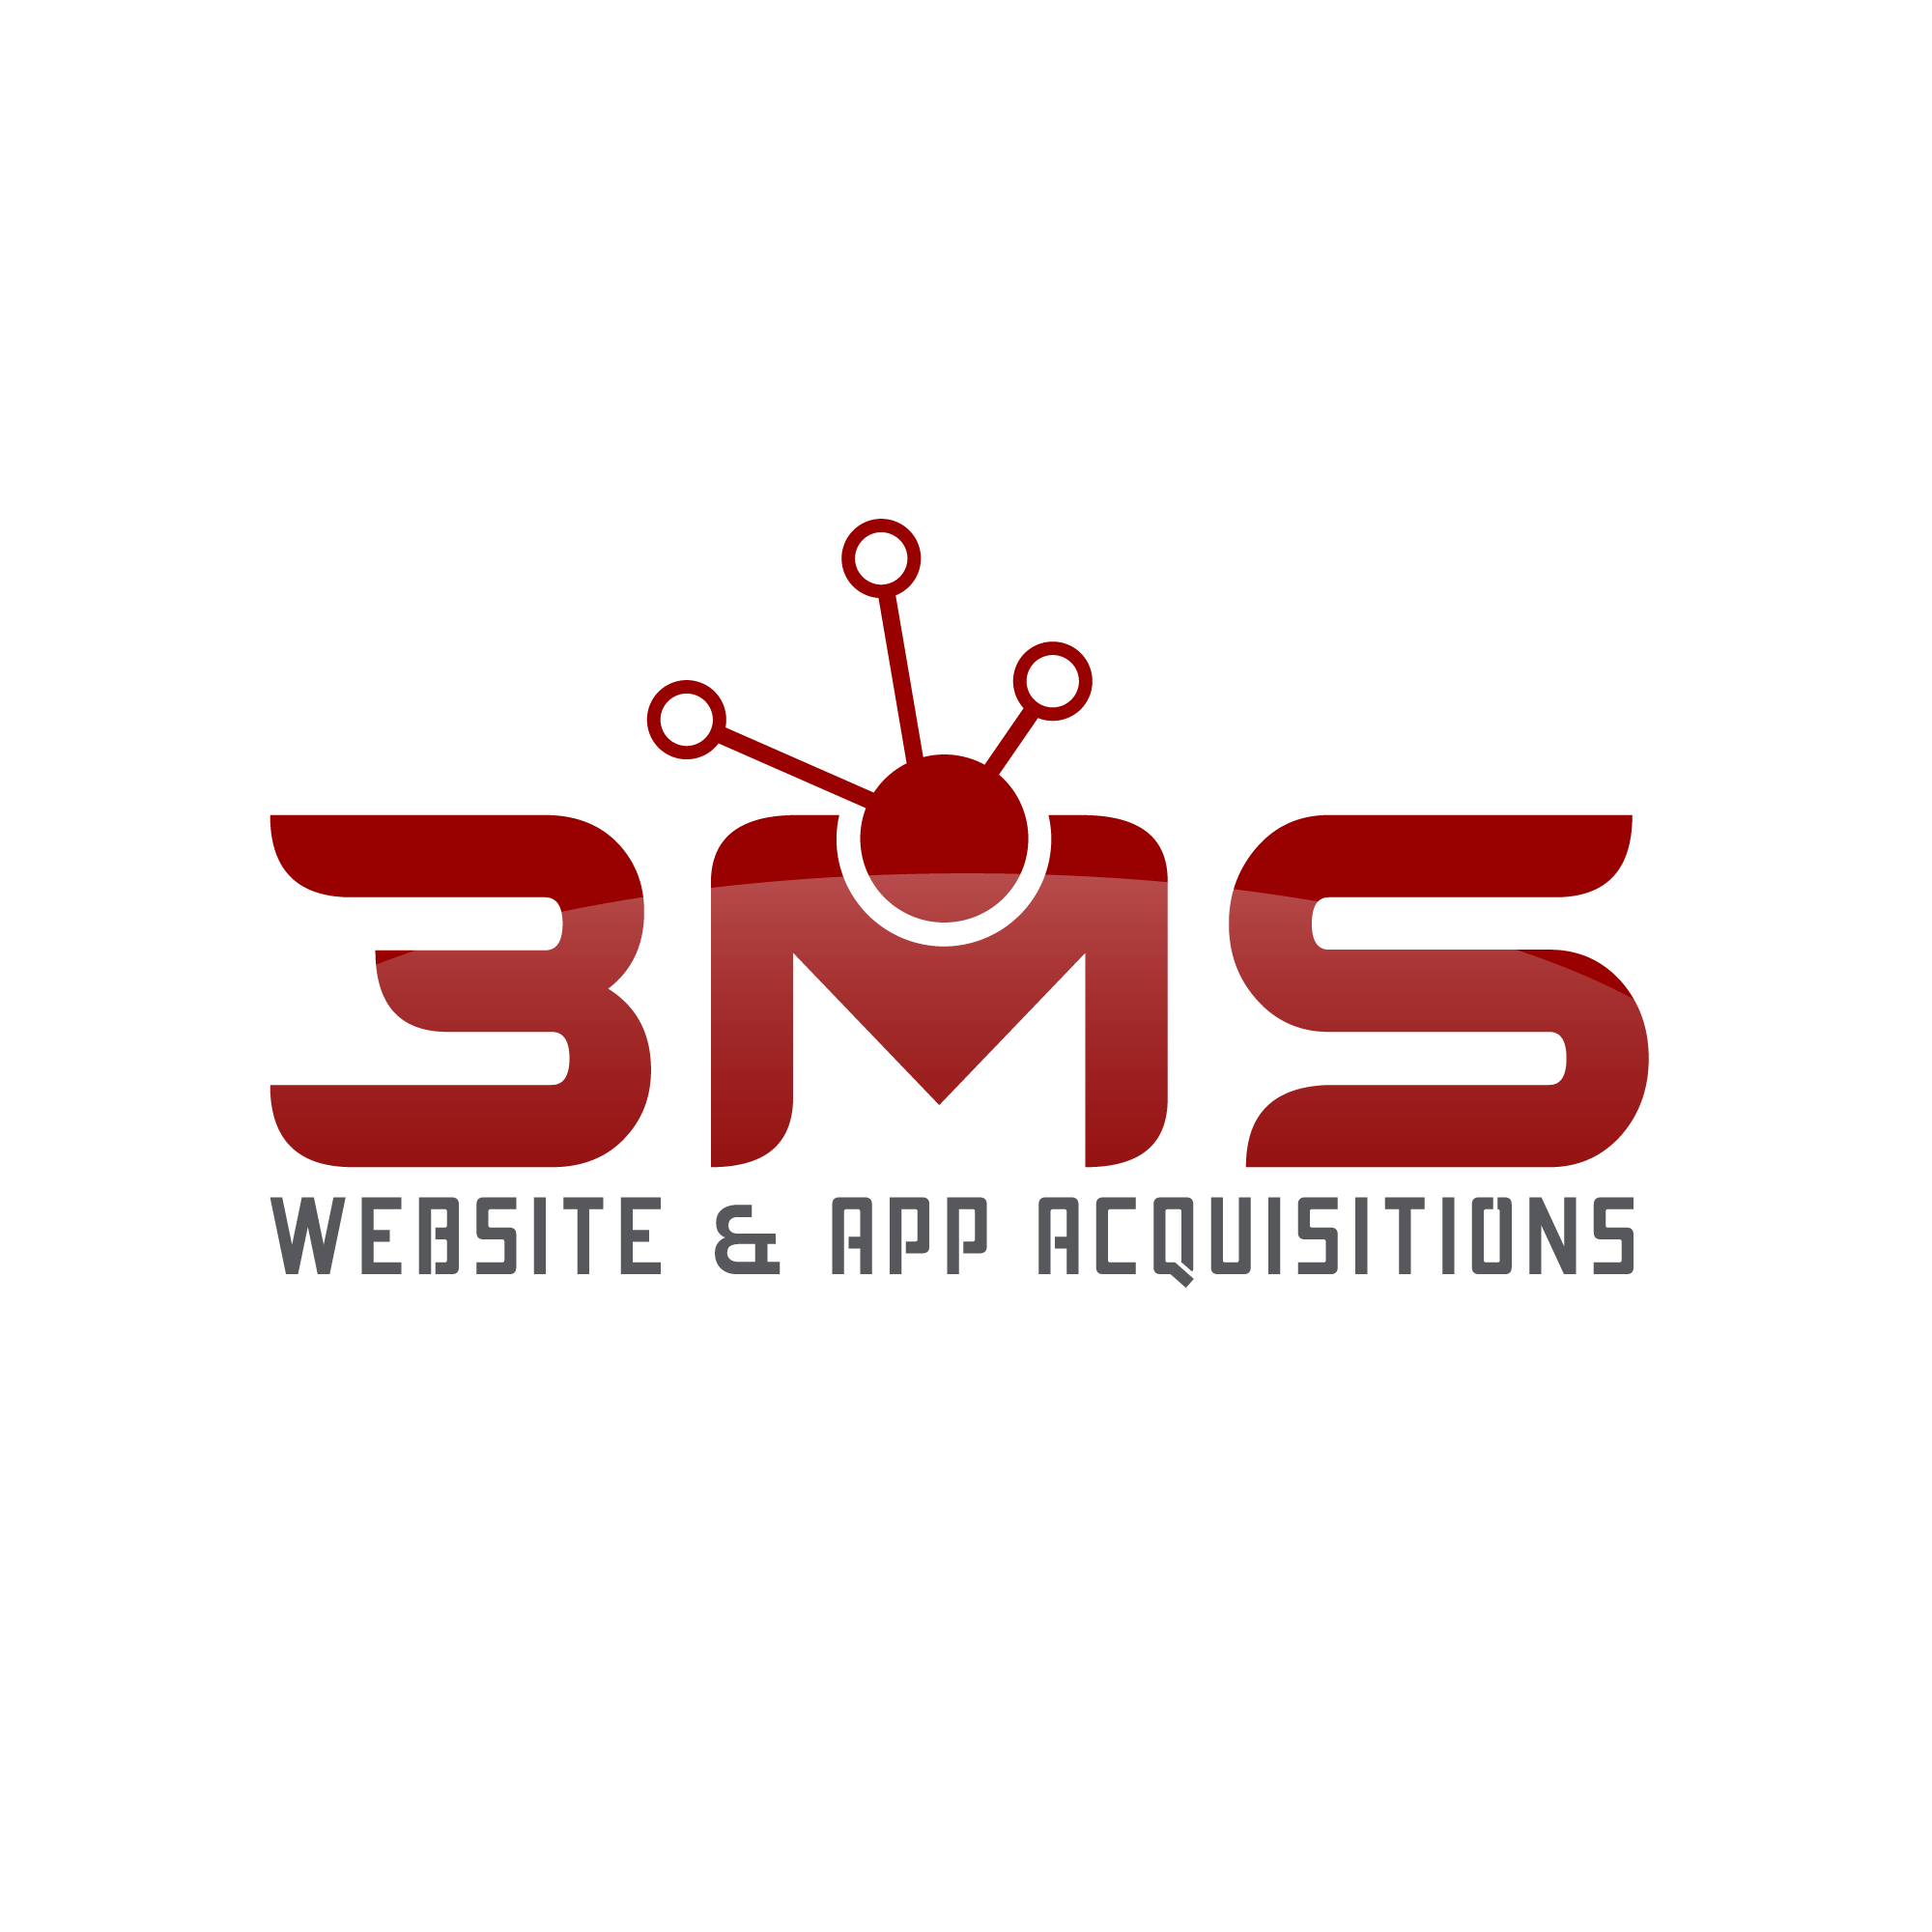 3MS Website & App Acquisitions